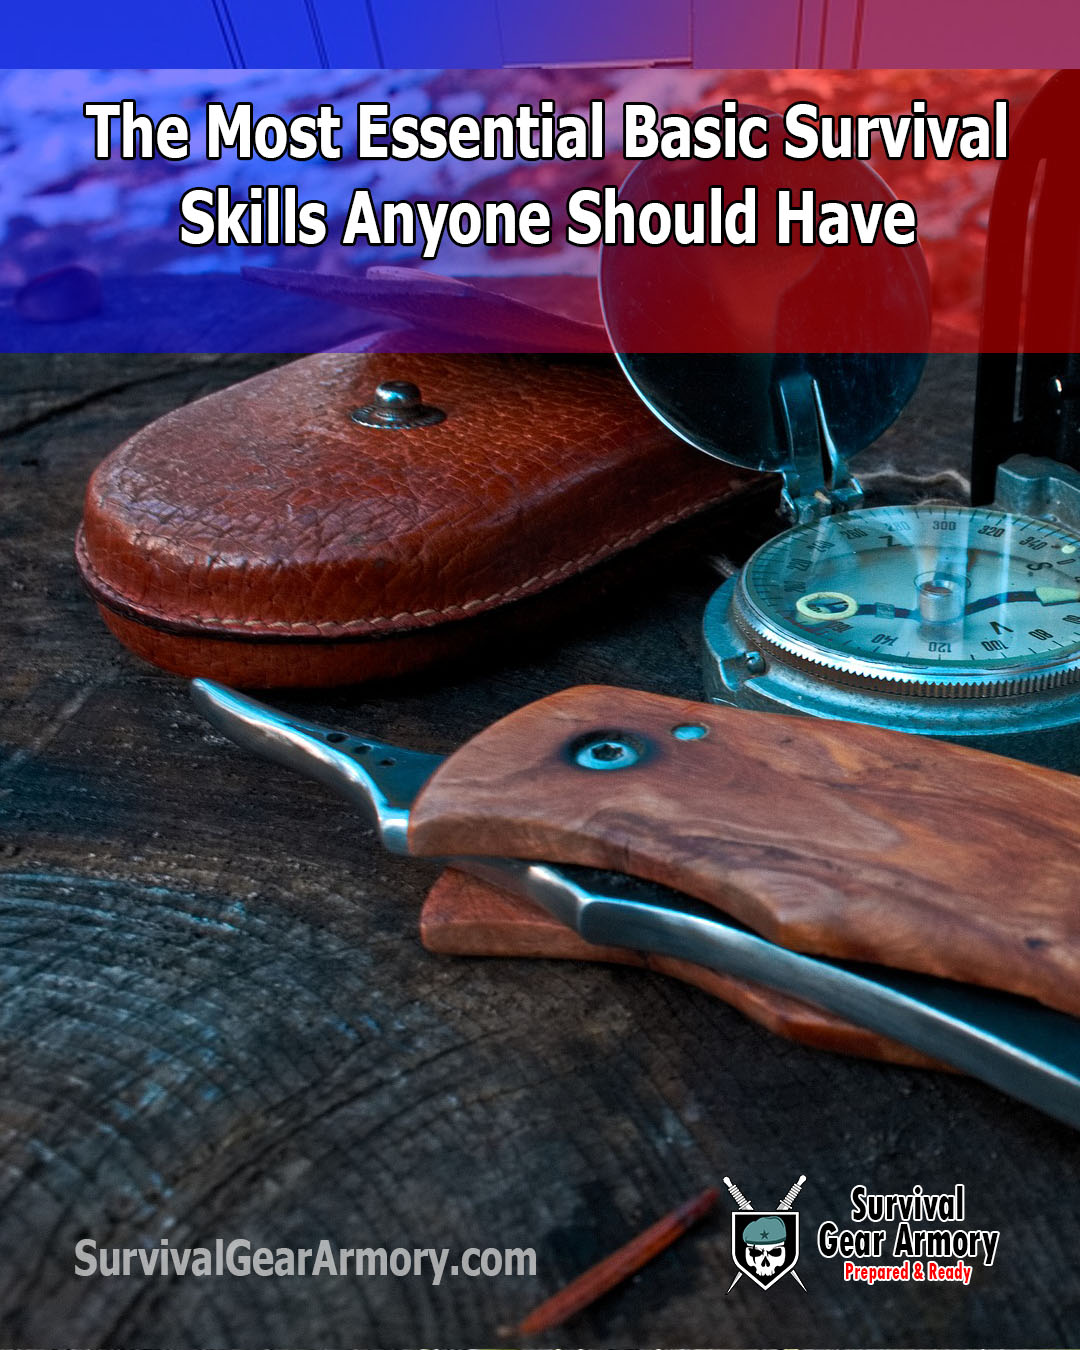 Basic Survival Skills: Basic Survival Skills Anyone Should Have